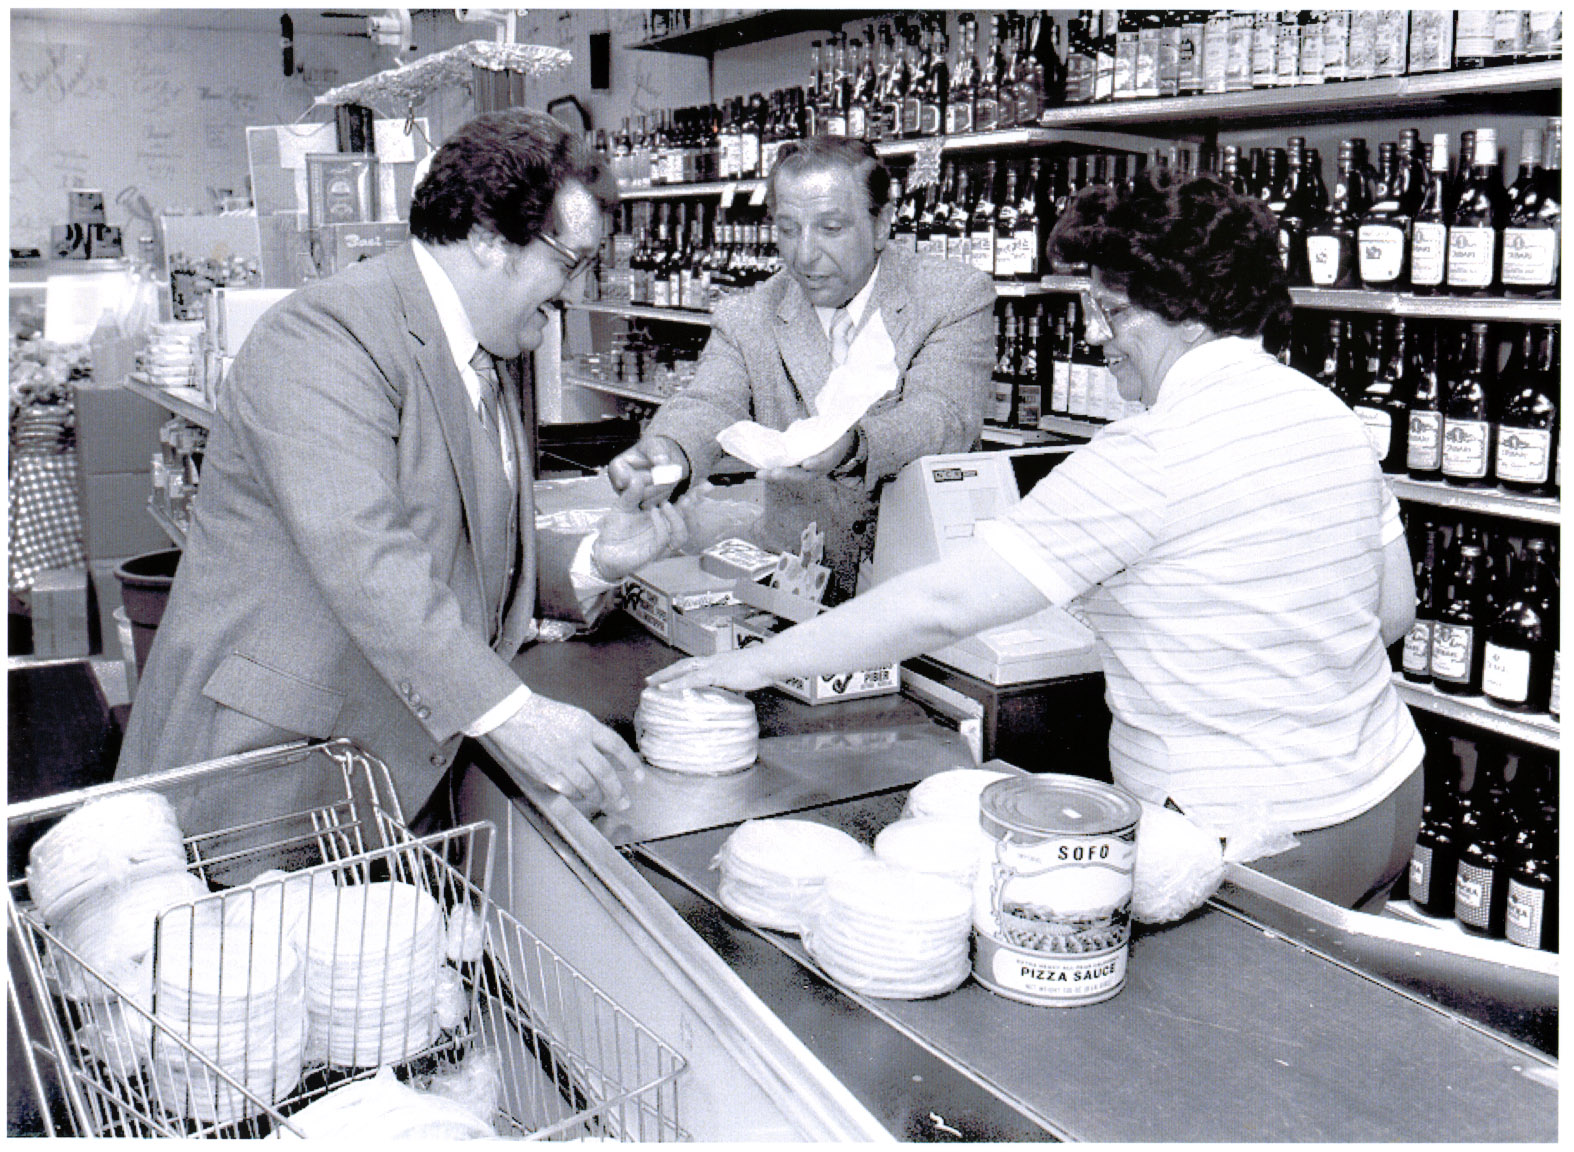 Joe Sofo and his sister Connie serving a customer